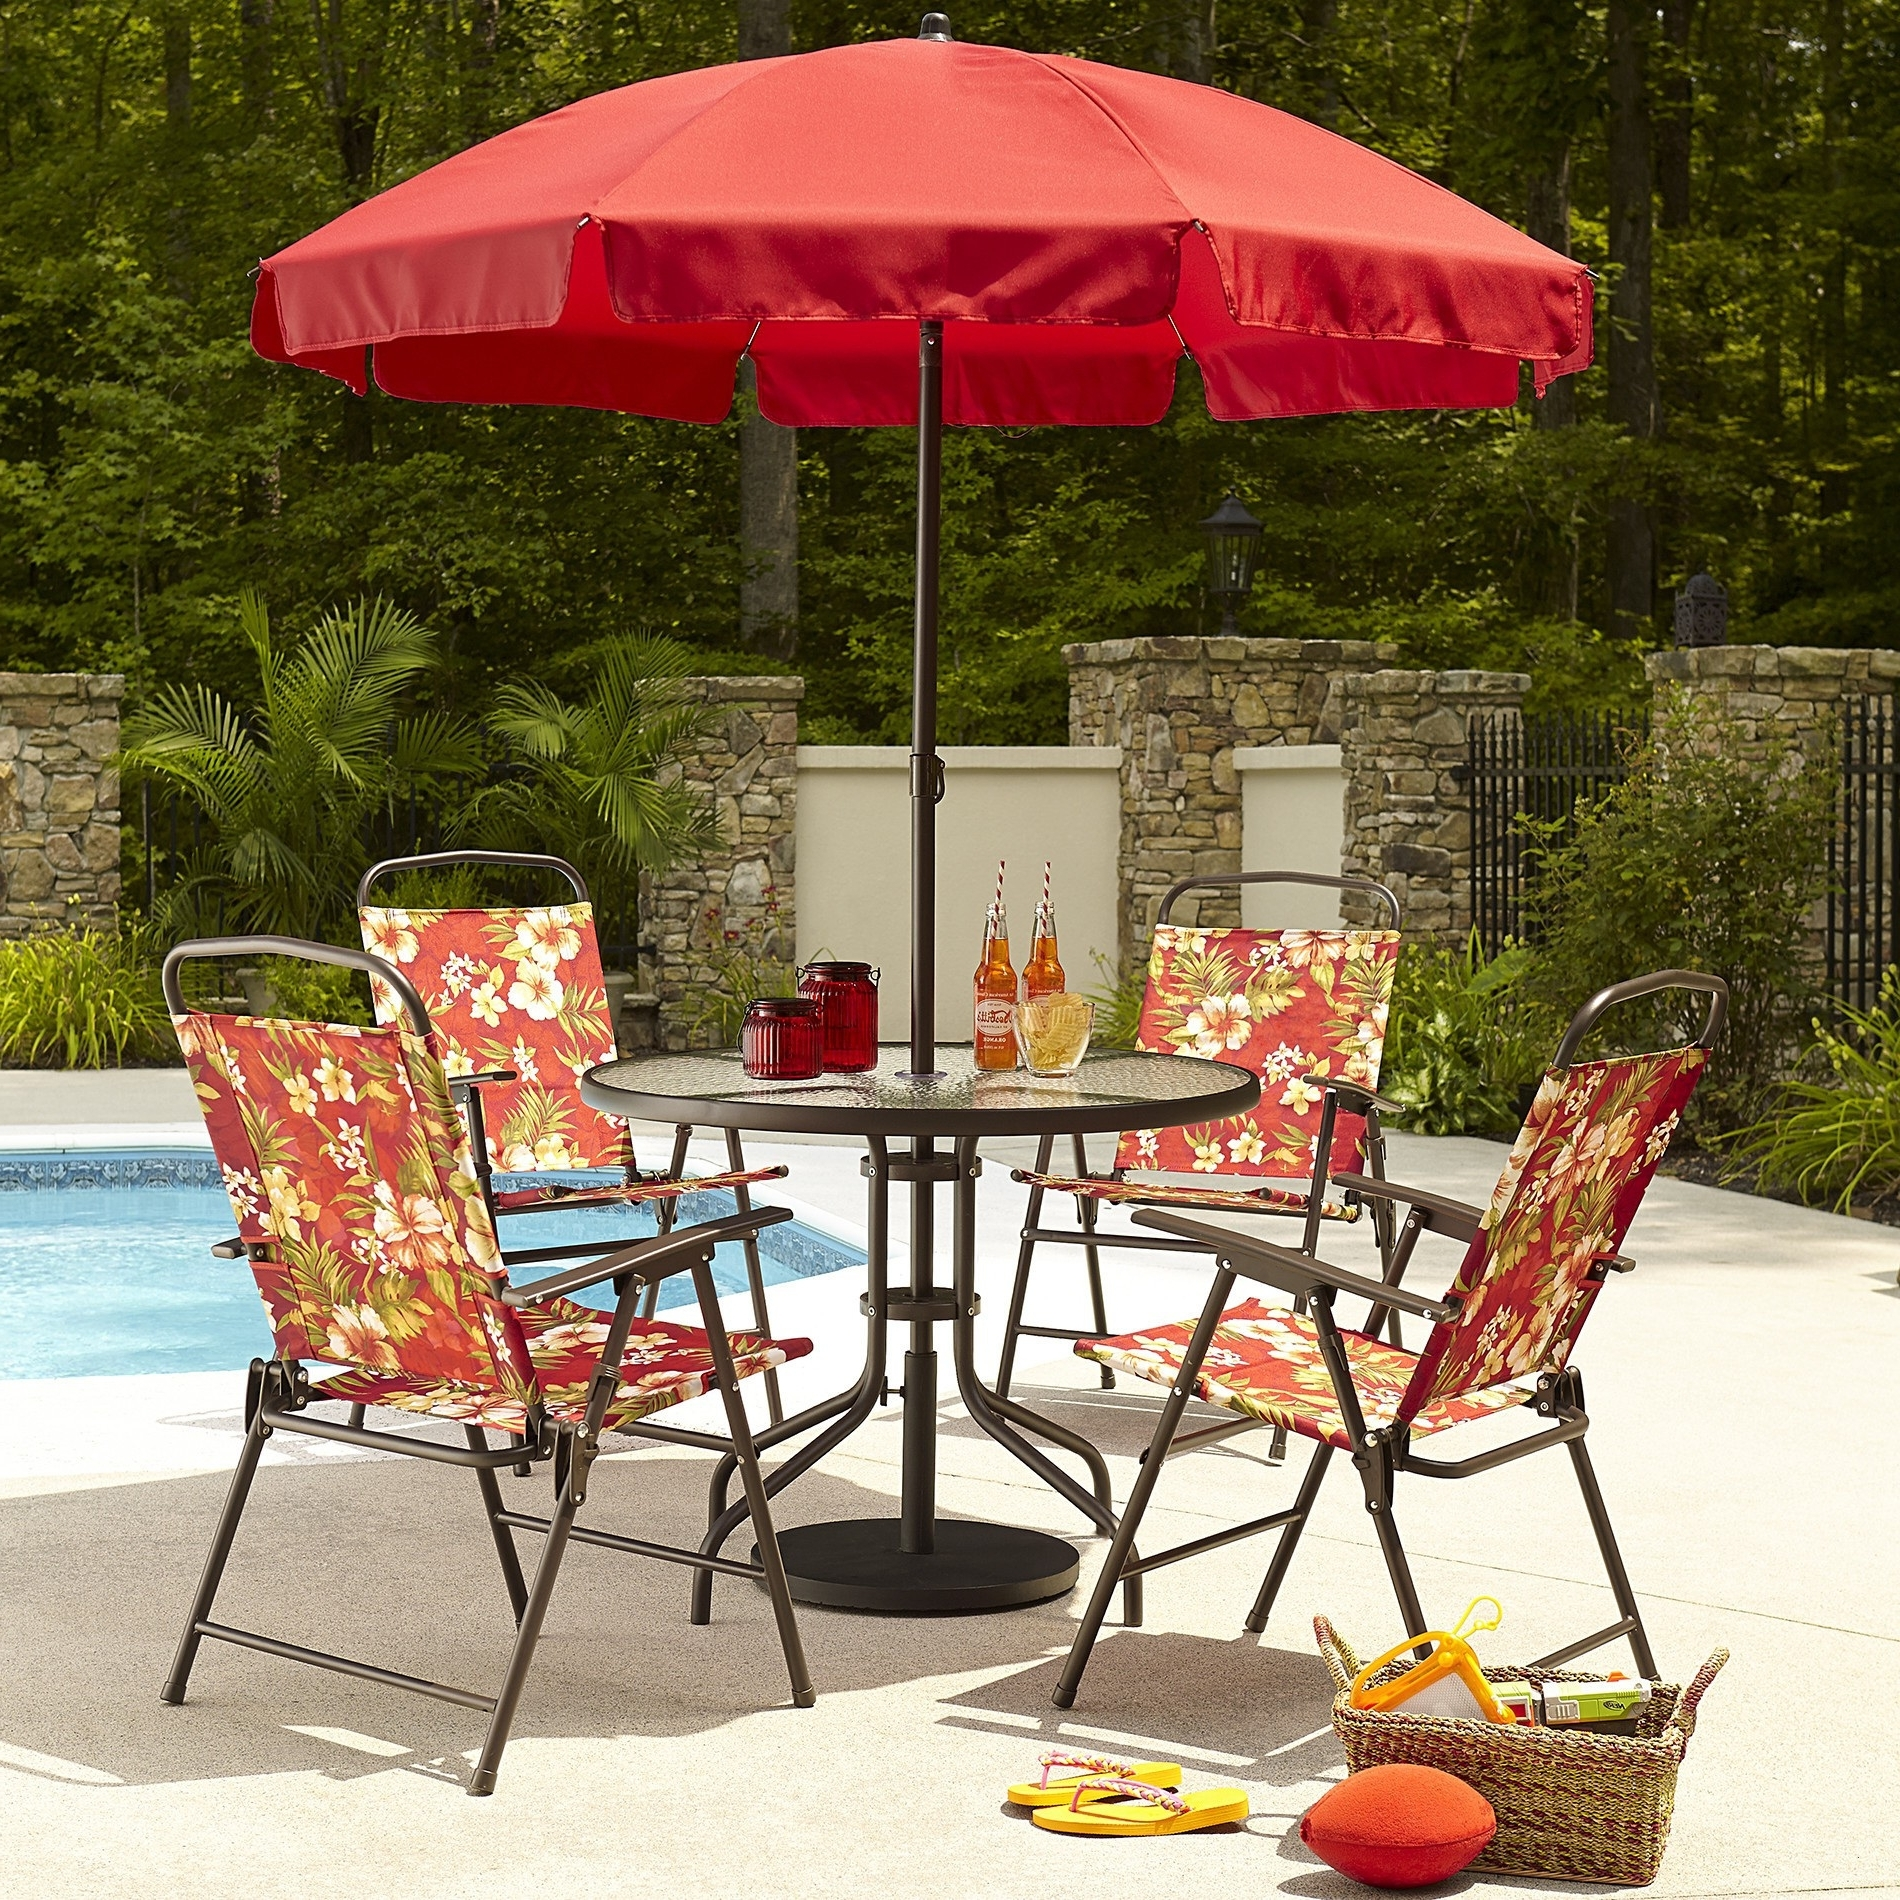 Well Known Kmart Patio Umbrellas Inside Kmart Outdoor Furniture Clearance New Cheap Kmart Patio Umbrellas (View 2 of 20)